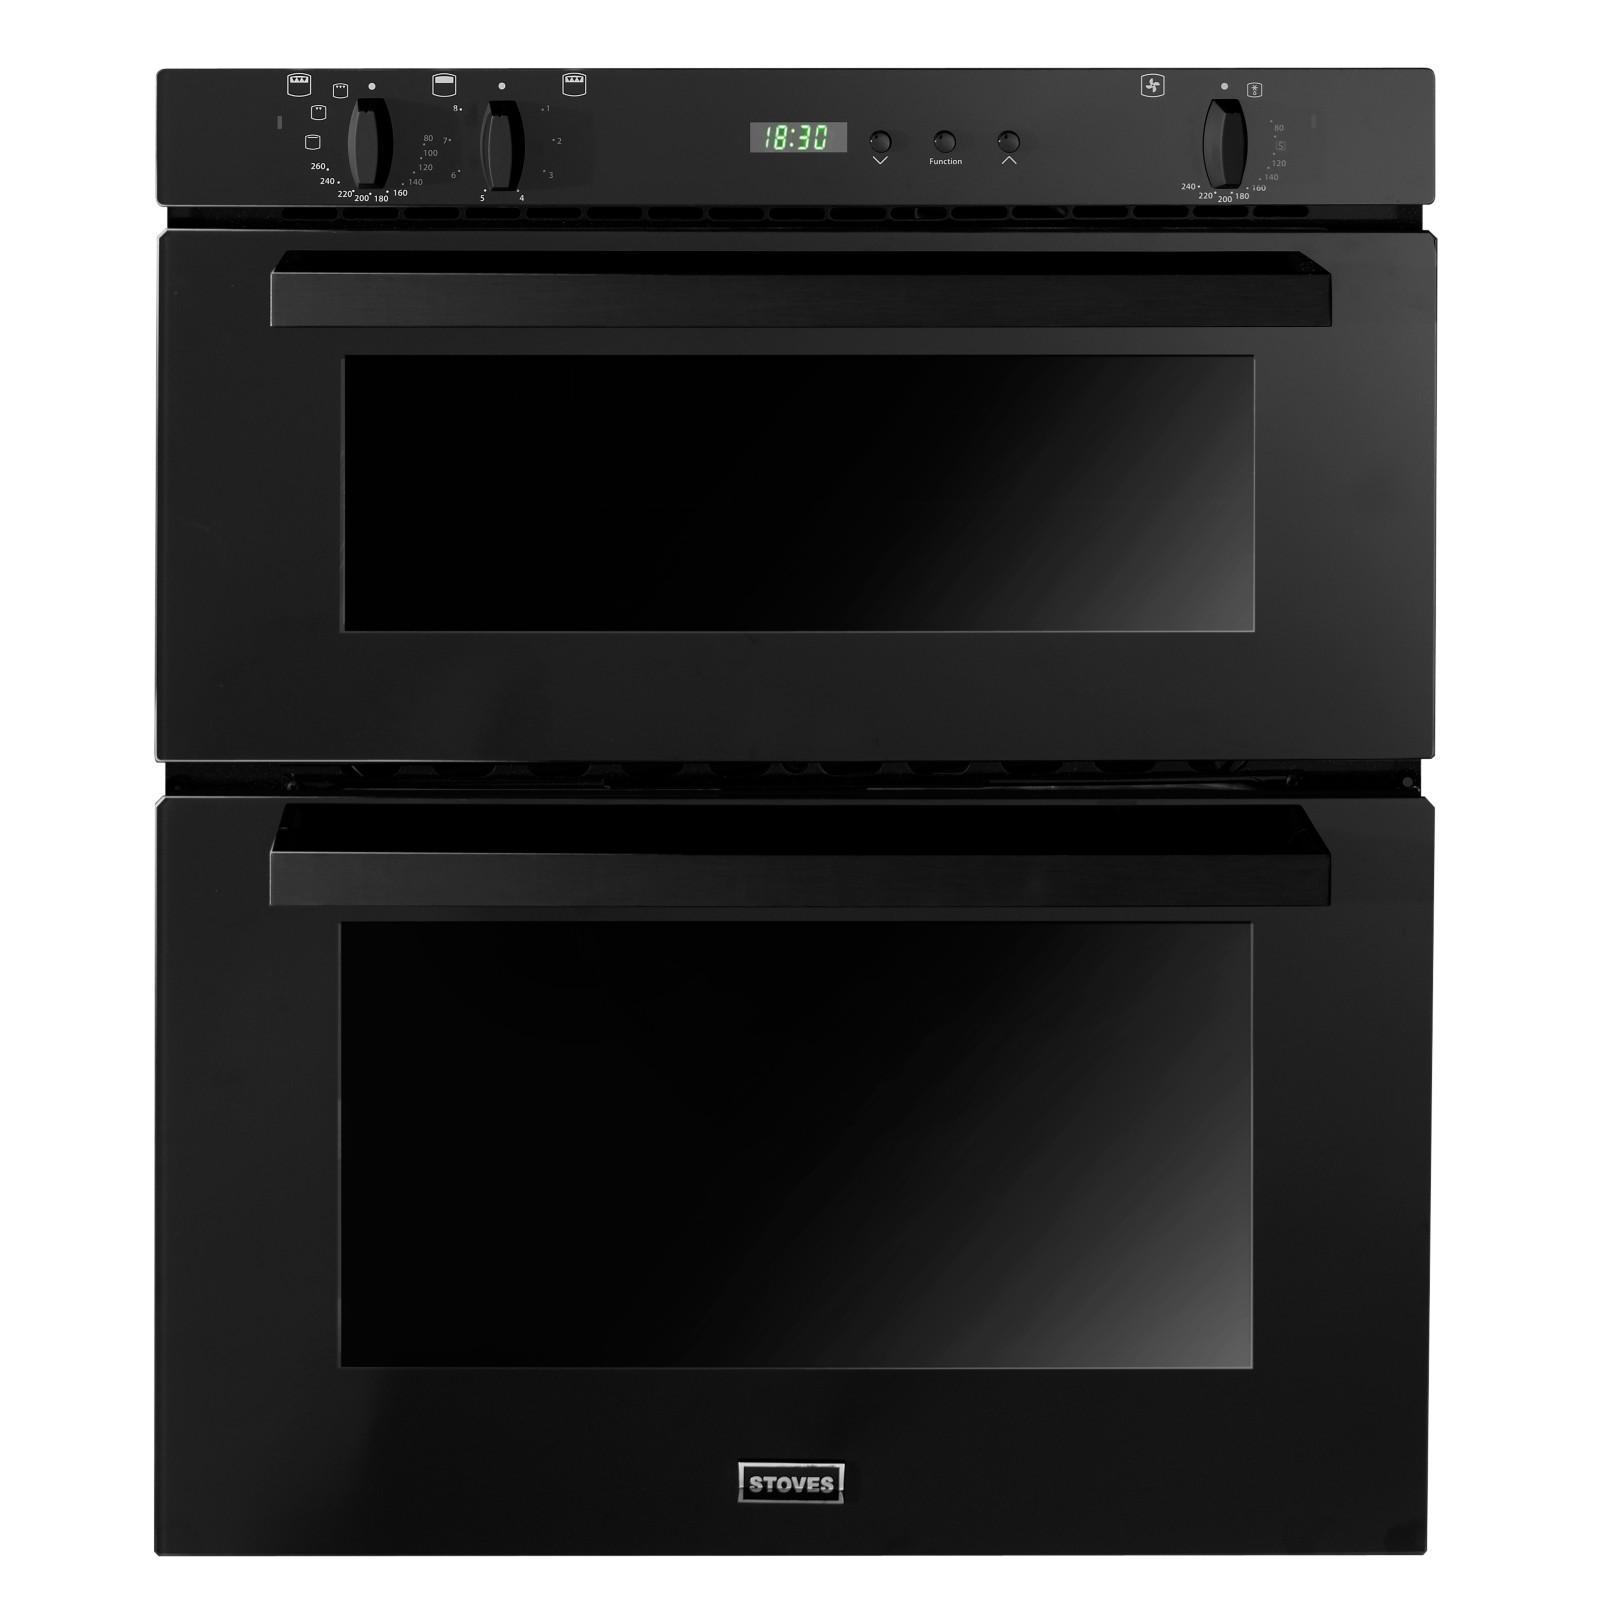 Stoves SEB700FPS Double Built-Under Electric Oven